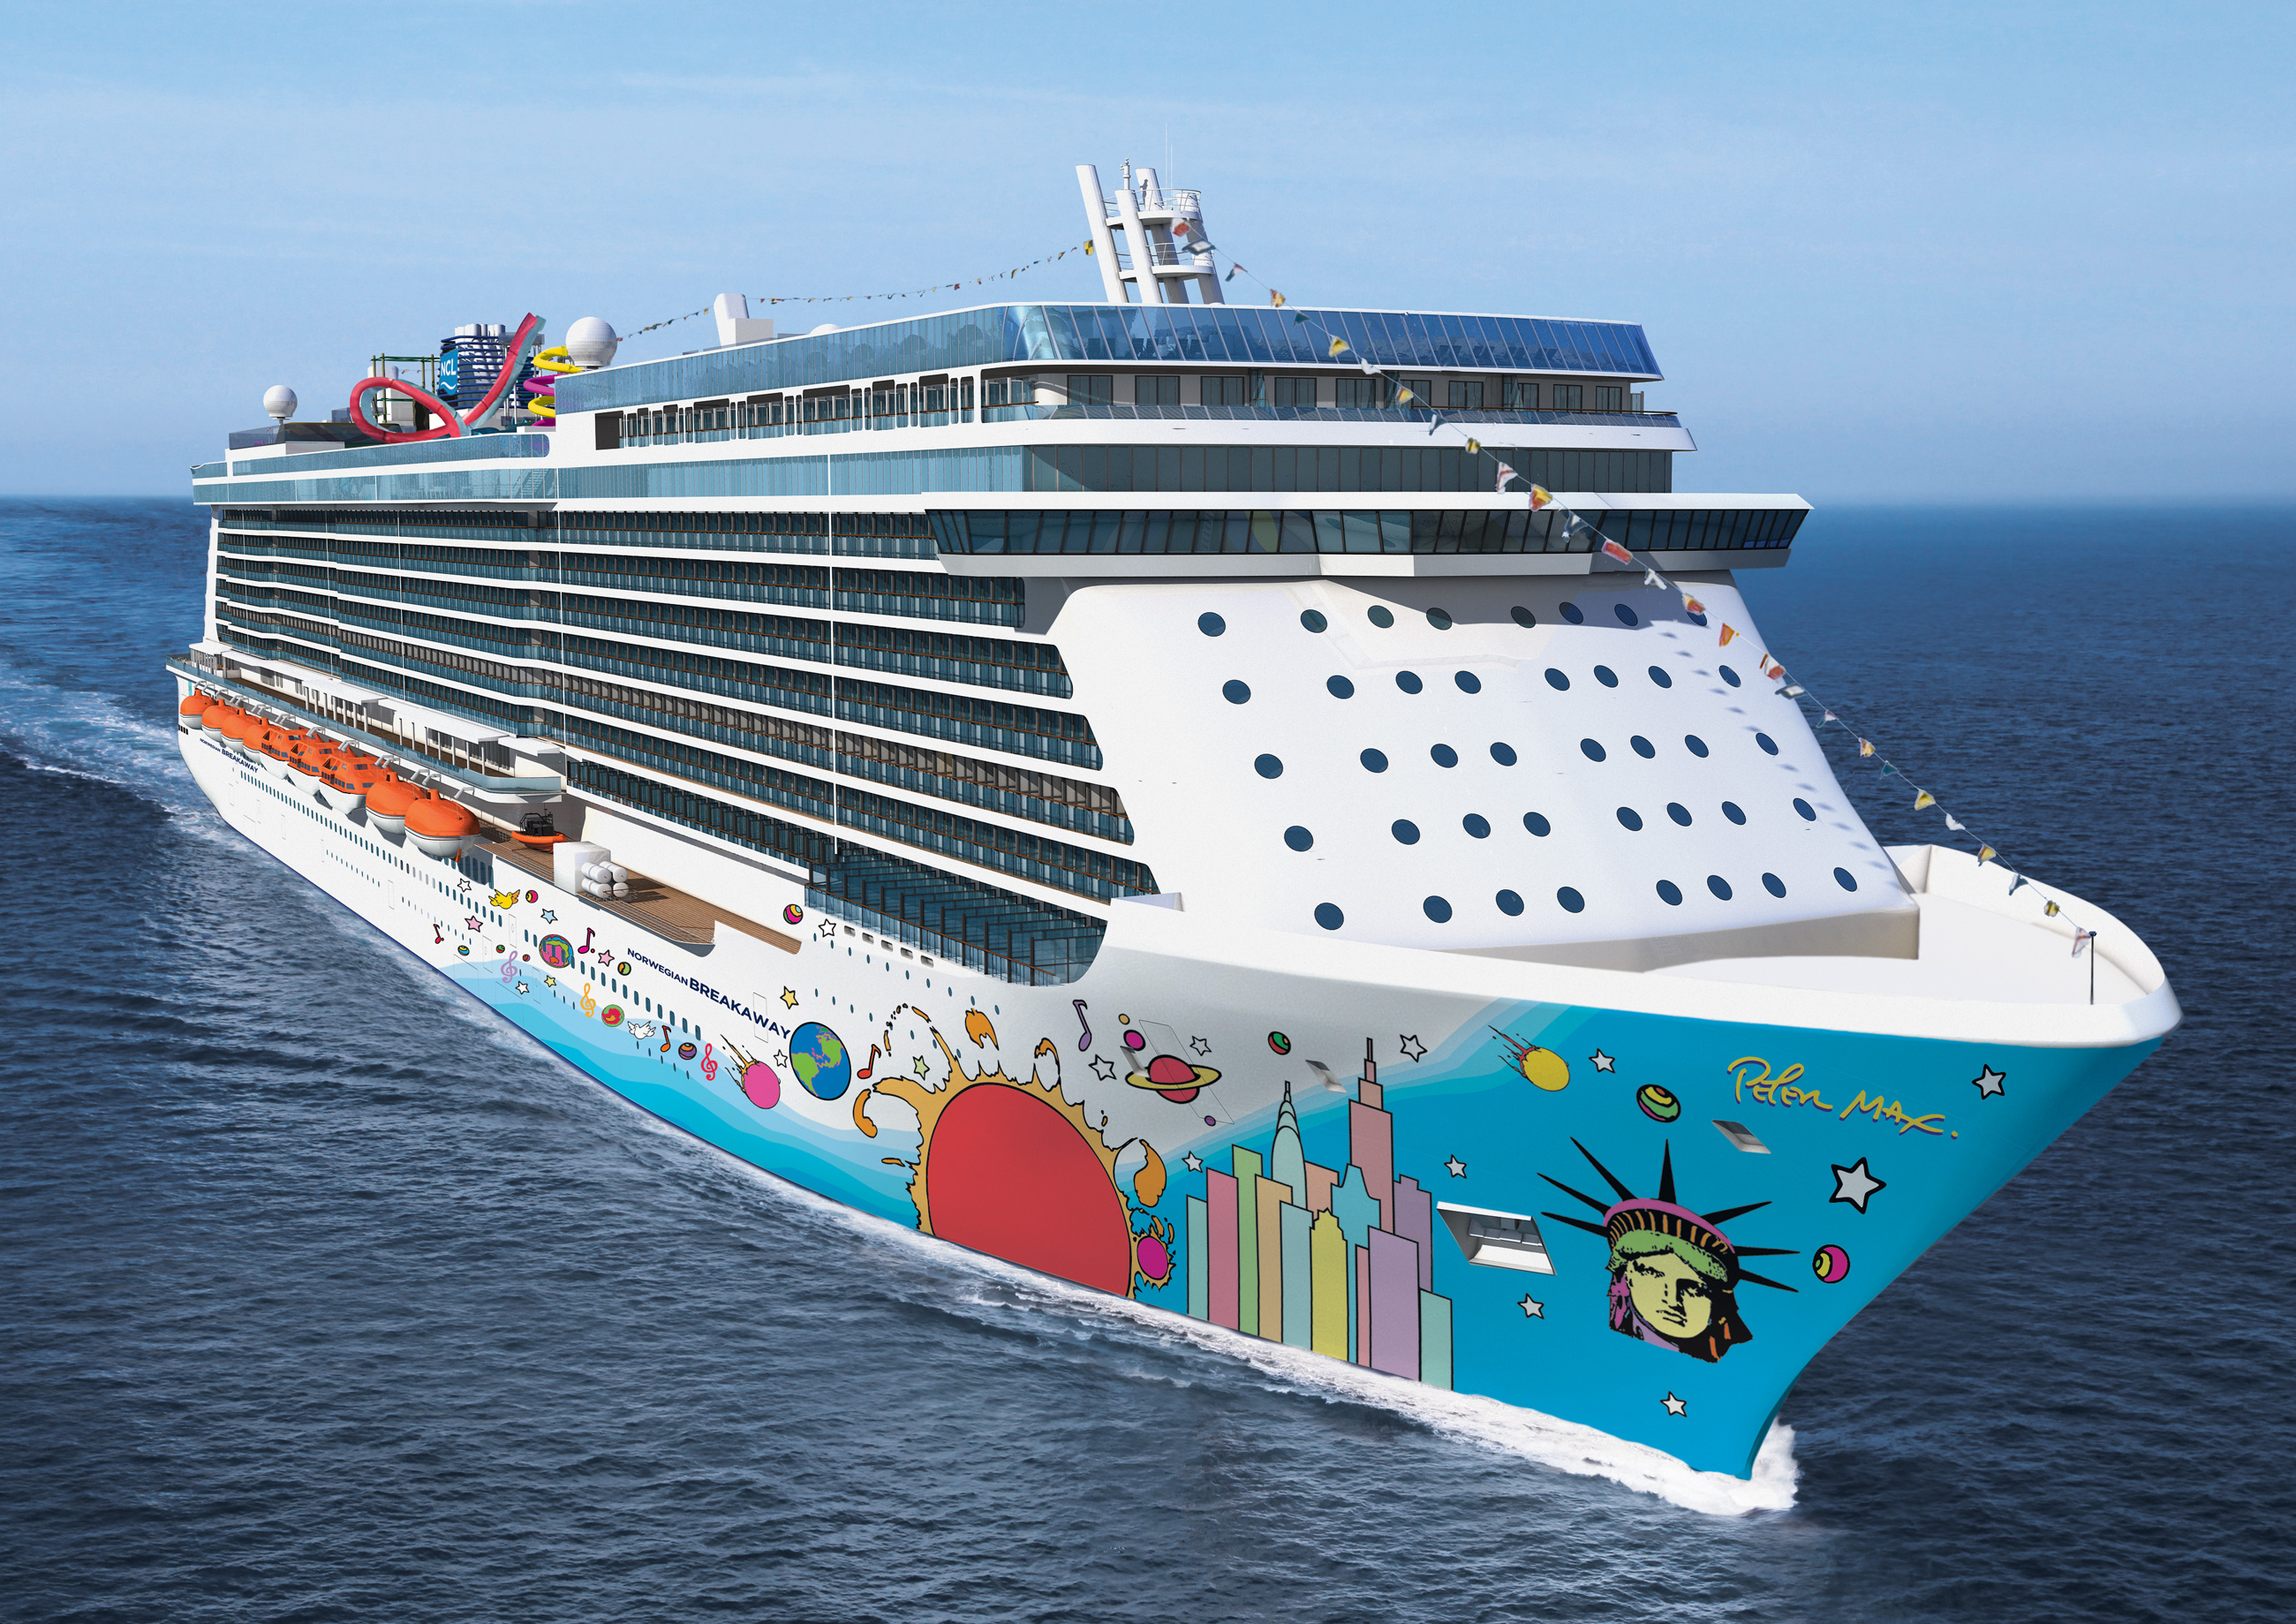 Norwegian Cruise Line and Nintendo Expand Partnership to Bring Wii U Gaming Fun to Ships